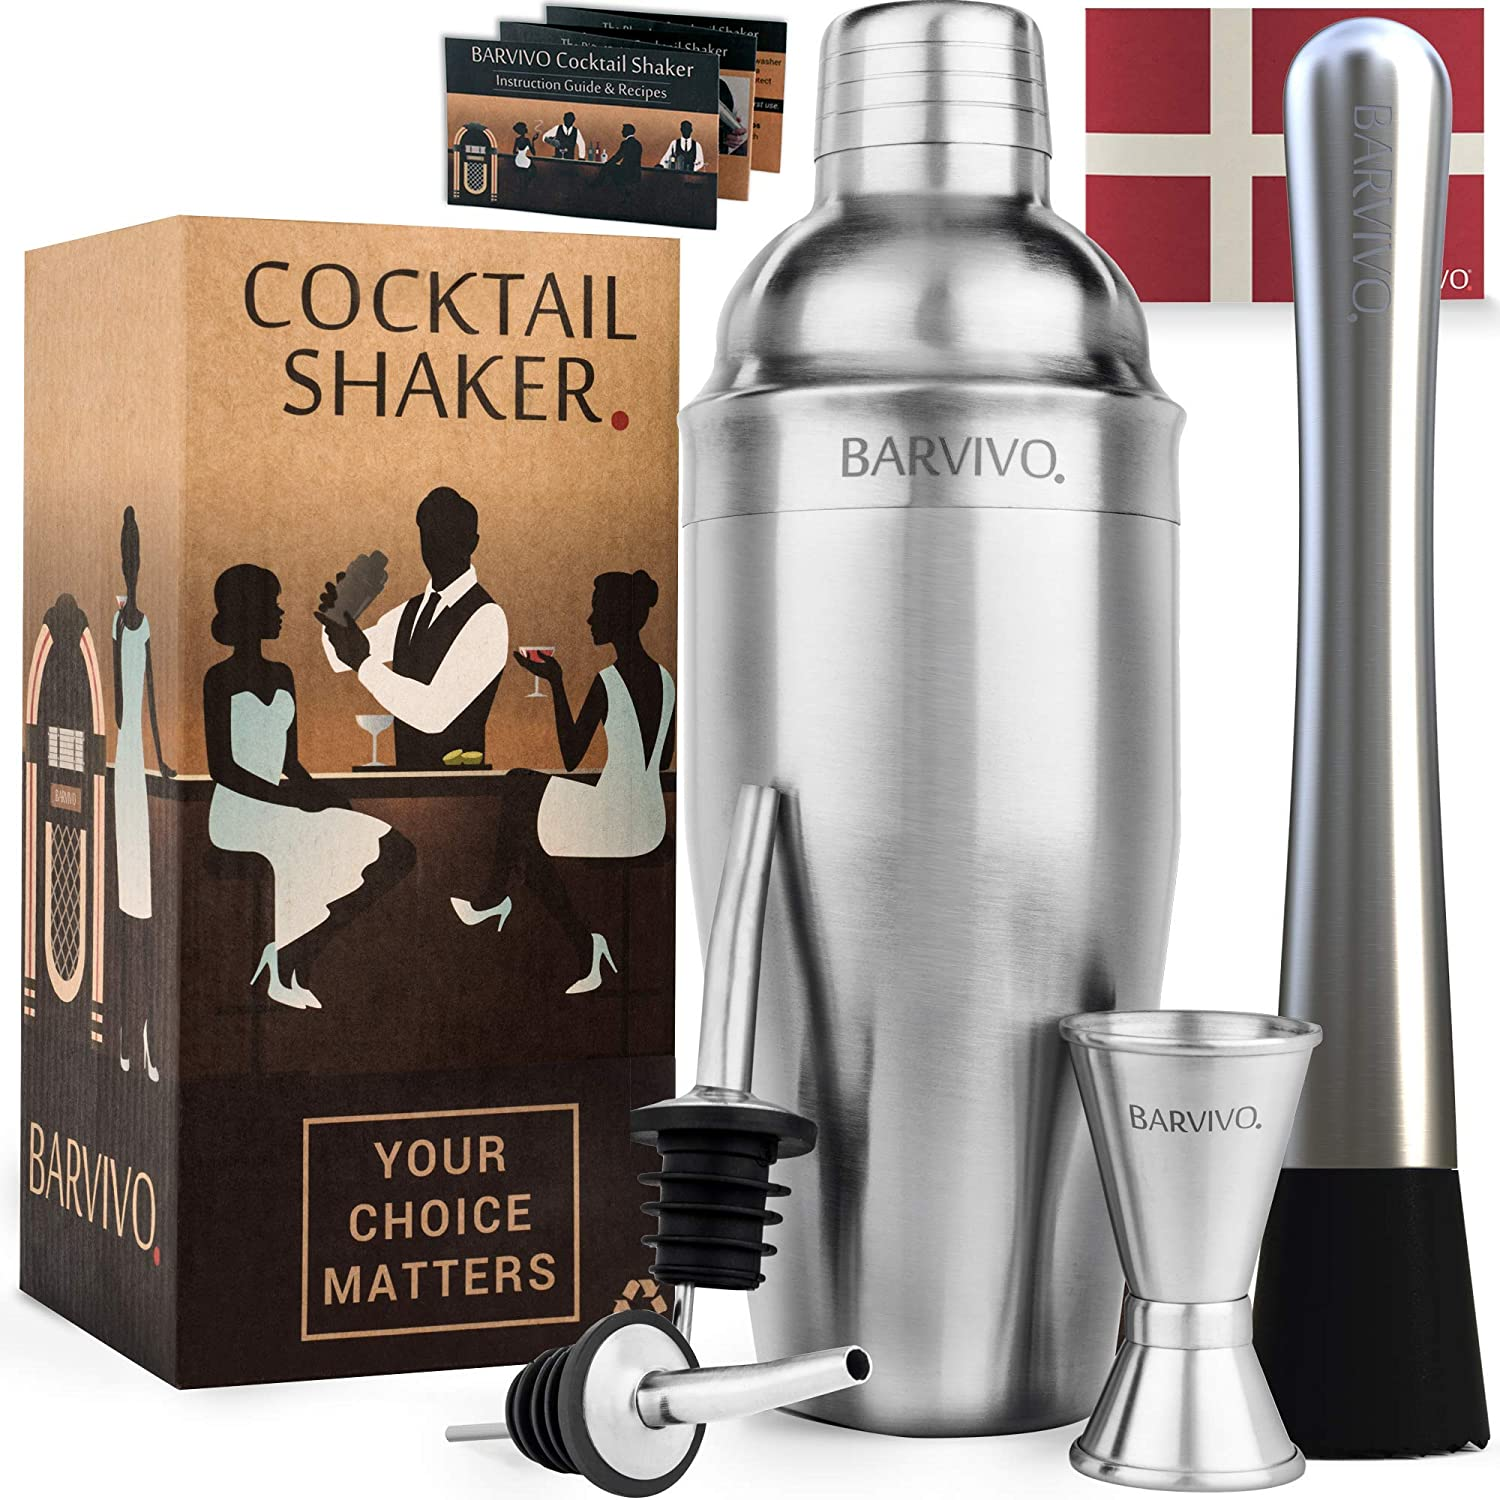 Barvivo Cocktail Shaker Set & Drink Muddler Bundle - Contains Everything Needed to Mix The Most Amazing Cocktails!